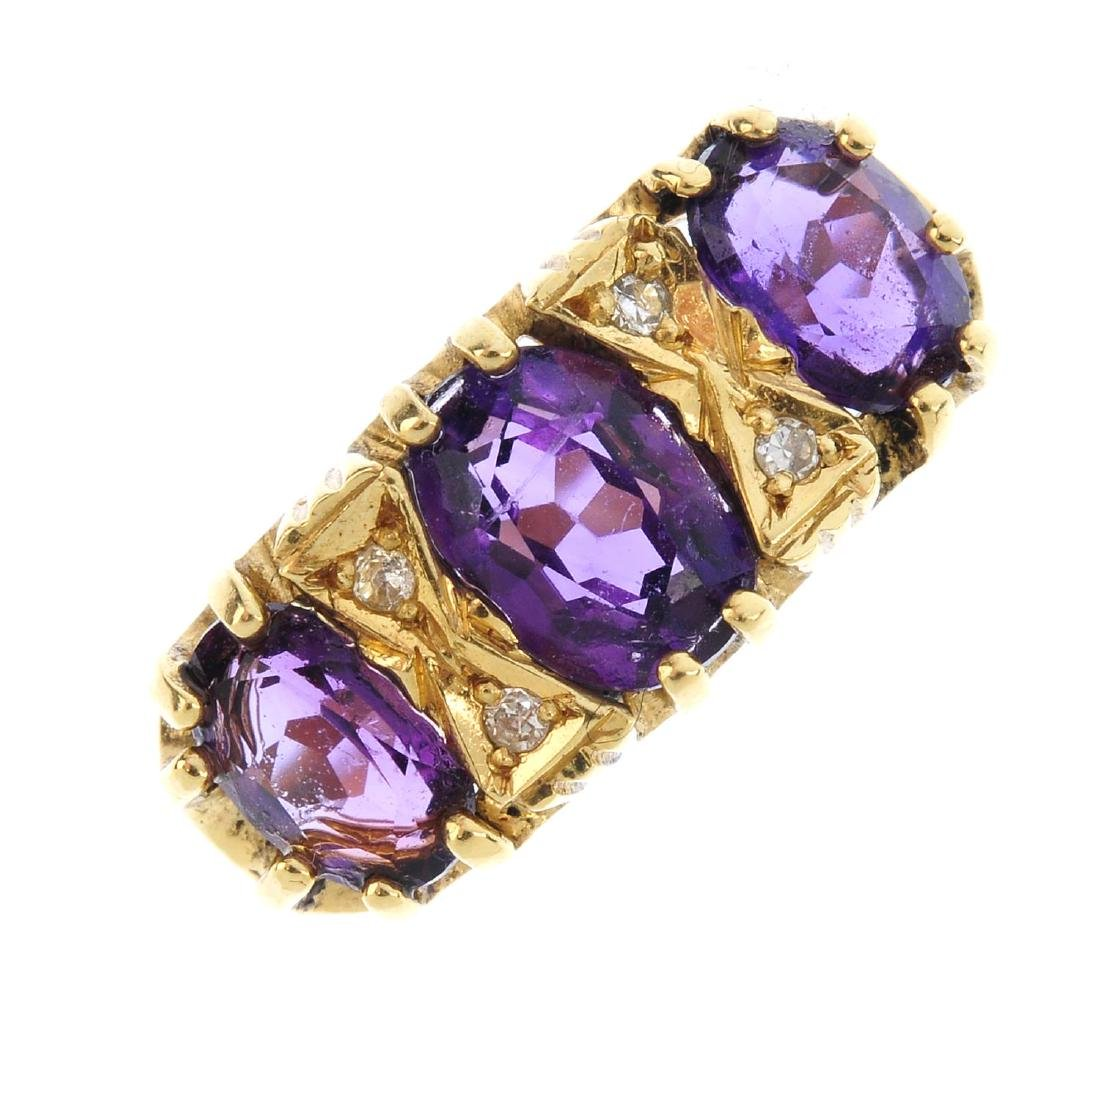 An 18ct gold amethyst and diamond dress ring. The